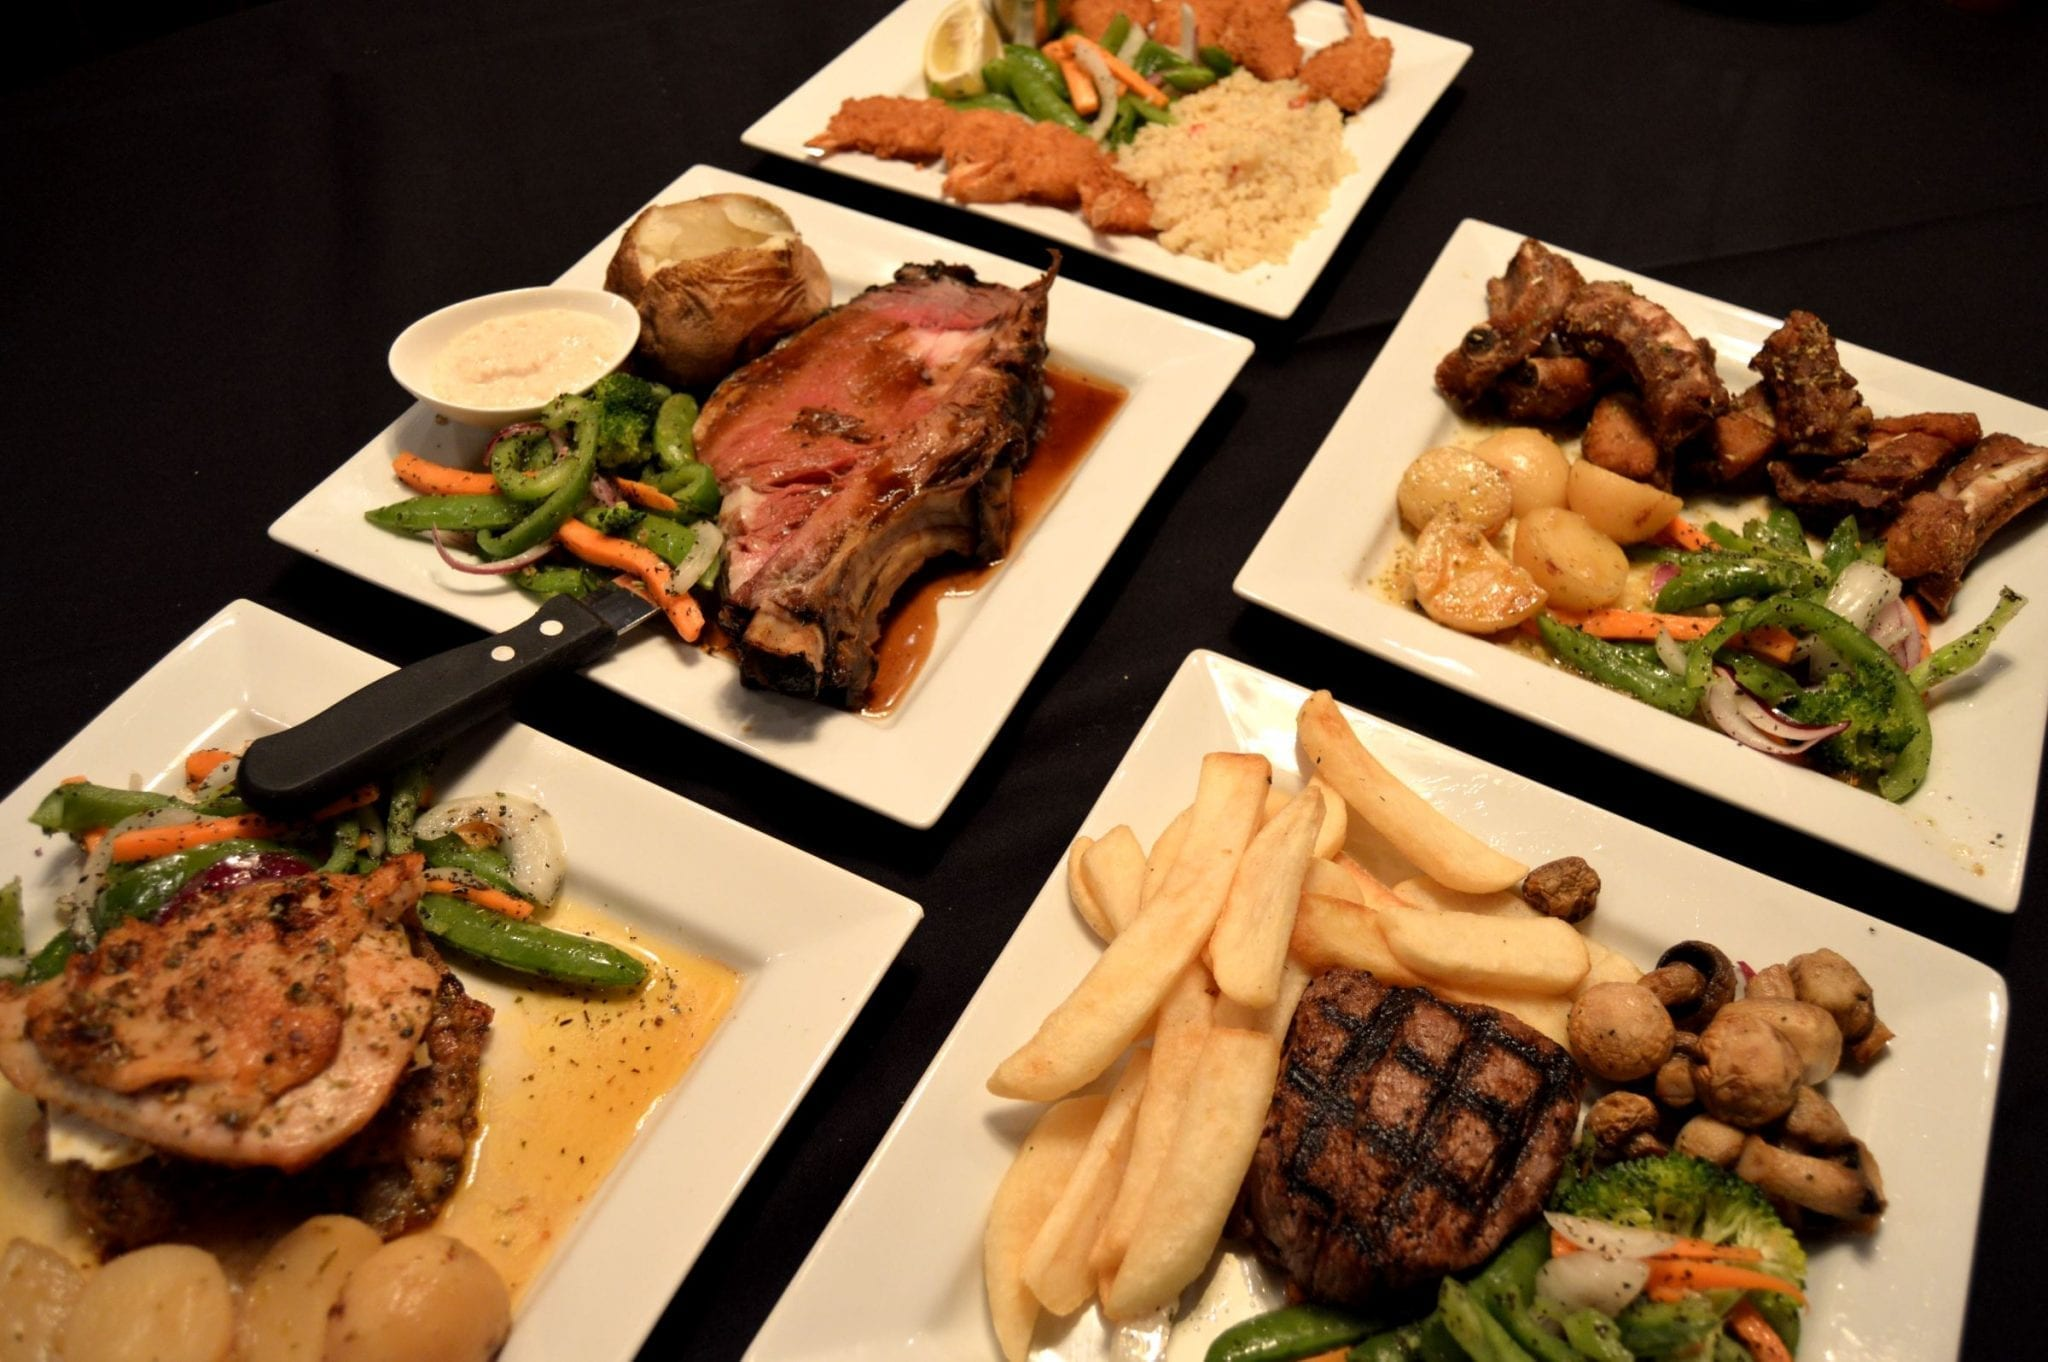 Various dishes available from Lakeshore Restaurant